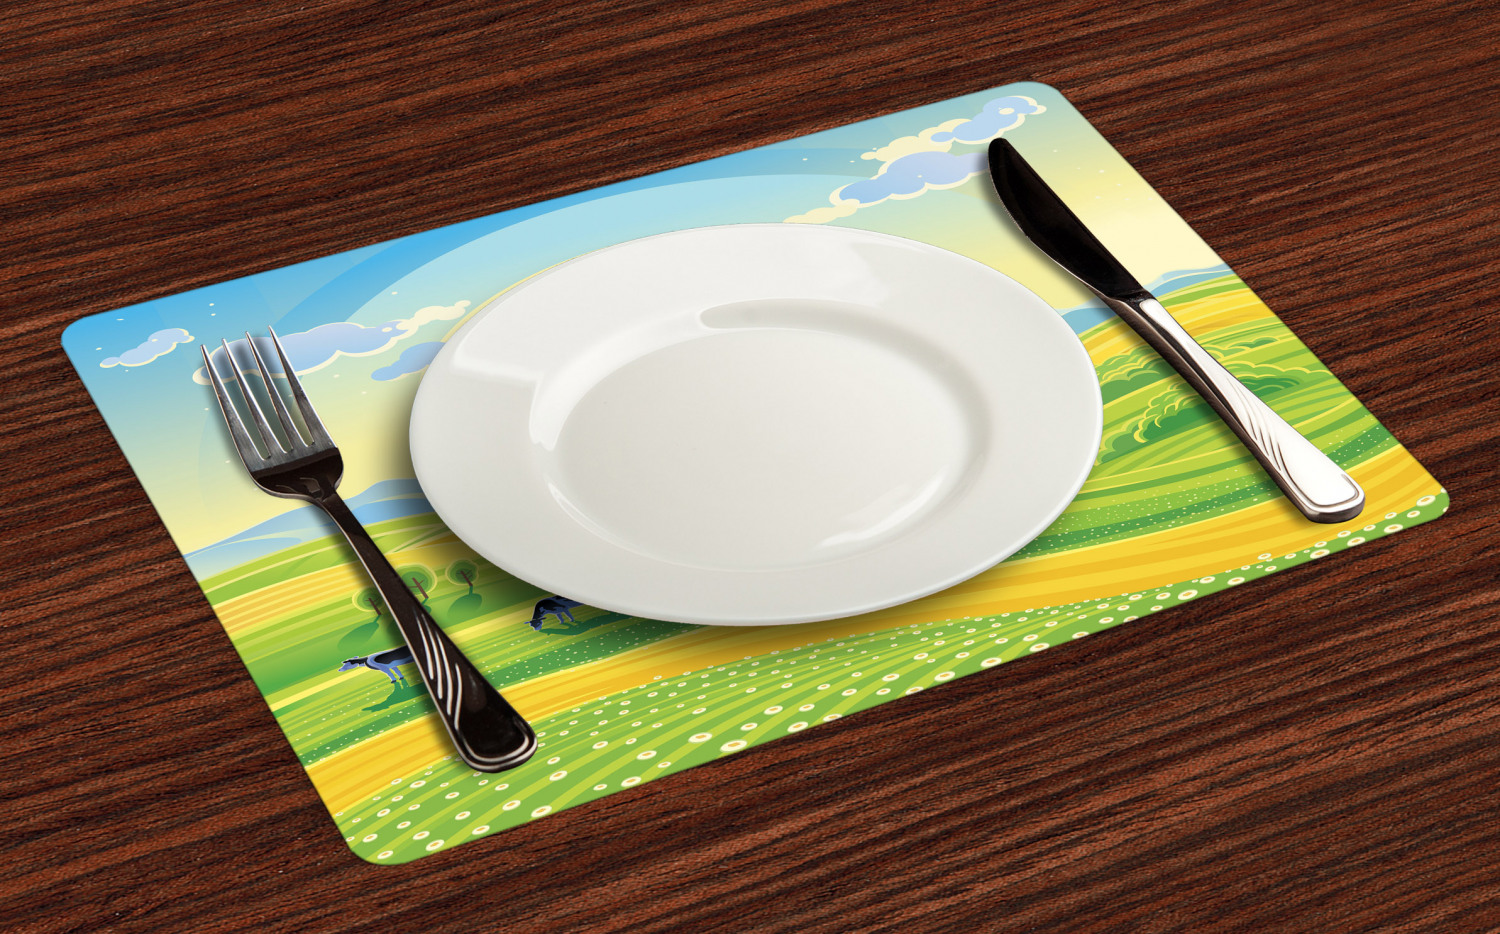 Ambesonne-Fabric-Place-Mats-Set-of-4-Placemats-for-Dining-Room-and-Kitchen-Table thumbnail 89